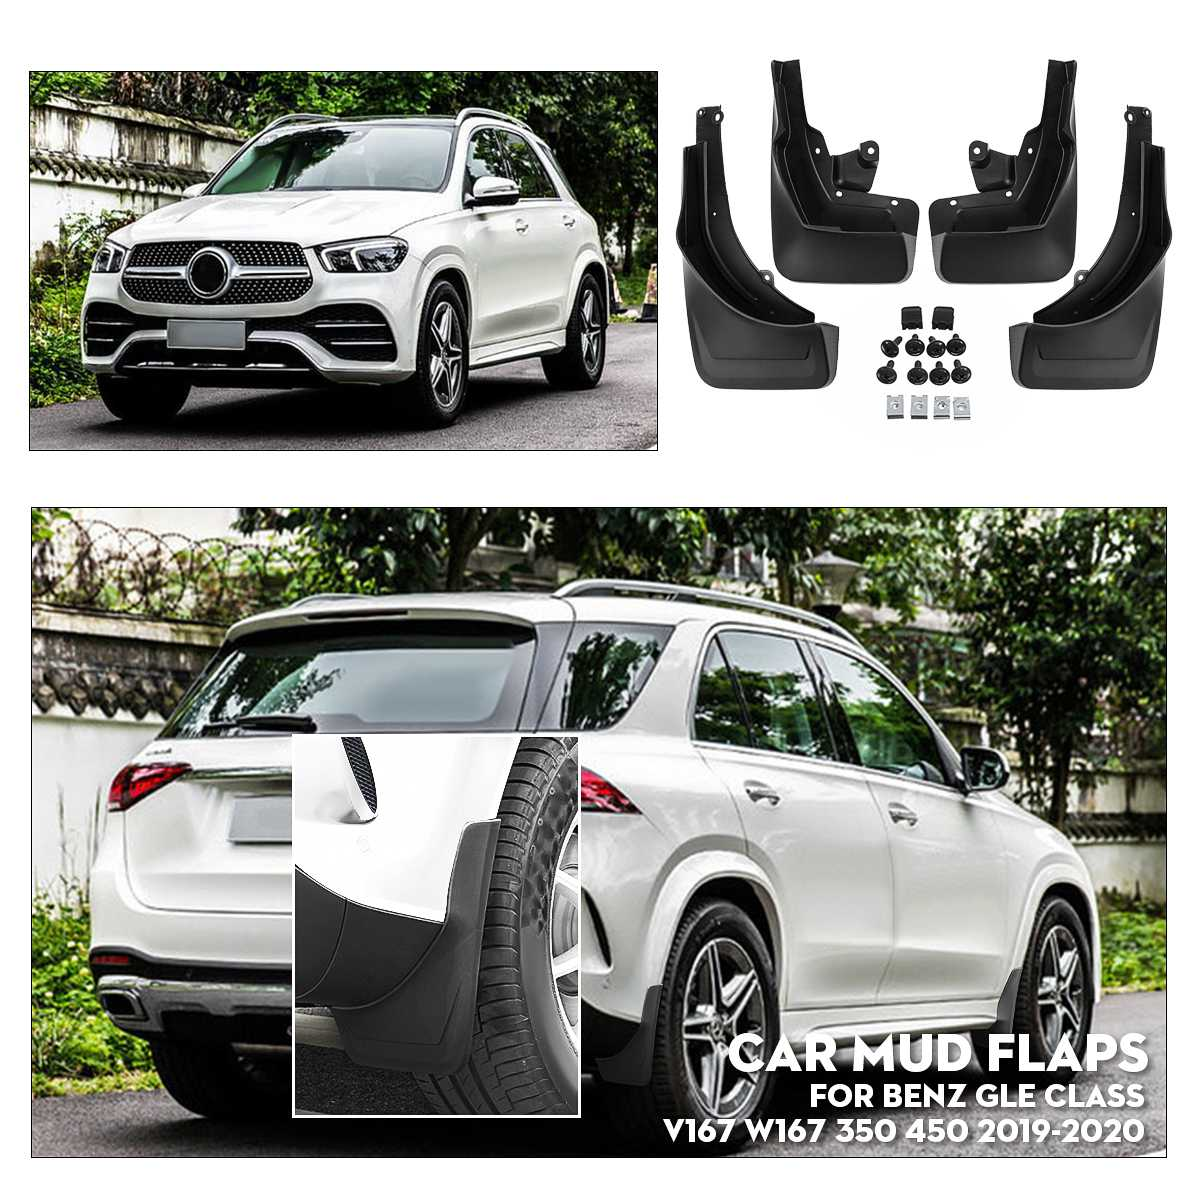 Car Mudflaps for Fender Mud Guard Splash Flap Mudguards For Mercedes/Benz GLE Class V167 W167 350 450 2019-2020